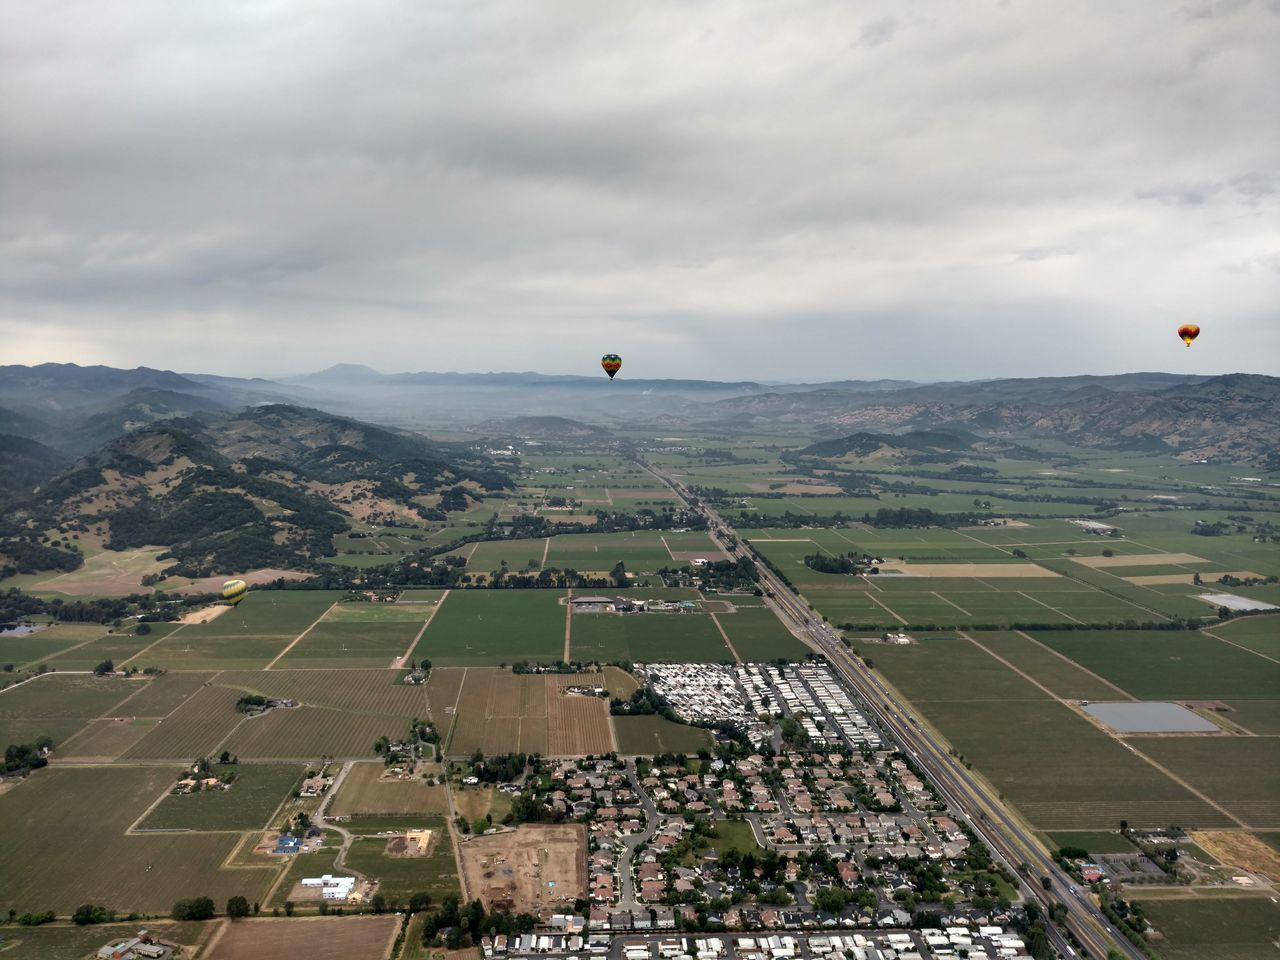 Aerial view of Napa Valley as seen from a Hot Air Balloon. Napa Valley is a beautiful area in the heart of California Wine Country. Aerial Winery Grapes 🍇 Horizon Over Land Landscape Napa Valley Nature Outdoors Sky